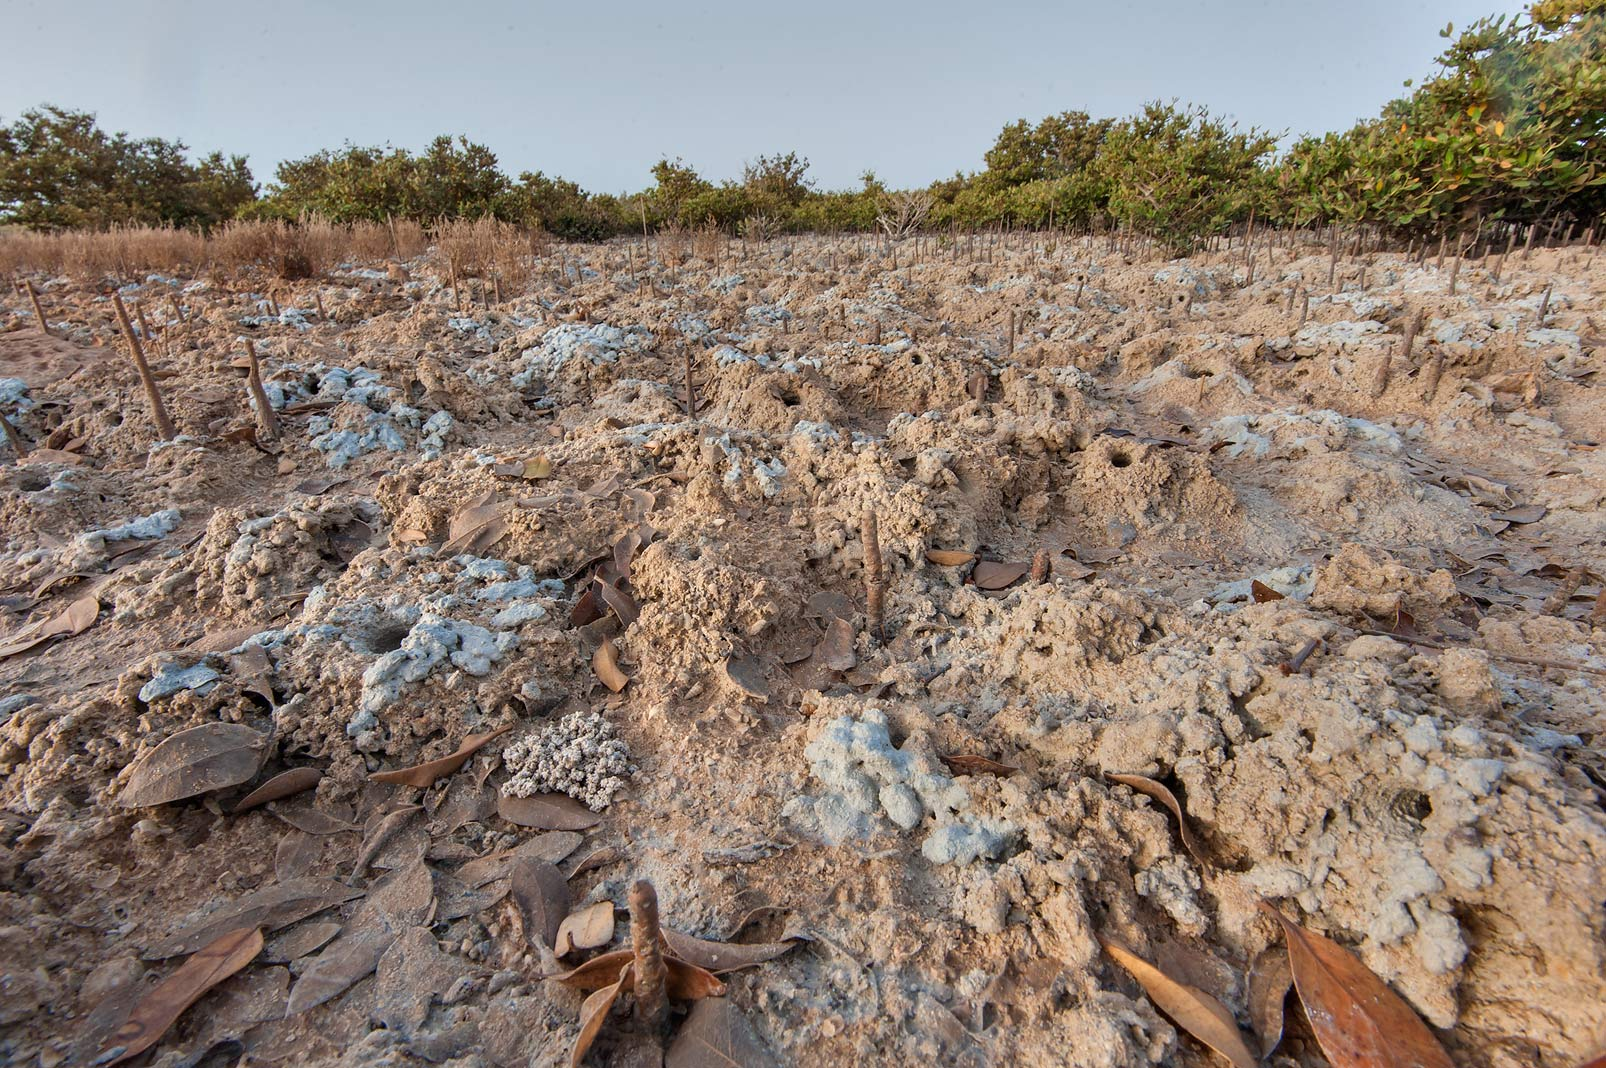 Muddy soil of mangrove forest exposed at low tide...Jazirat Bin Ghanim). Al Khor, Qatar